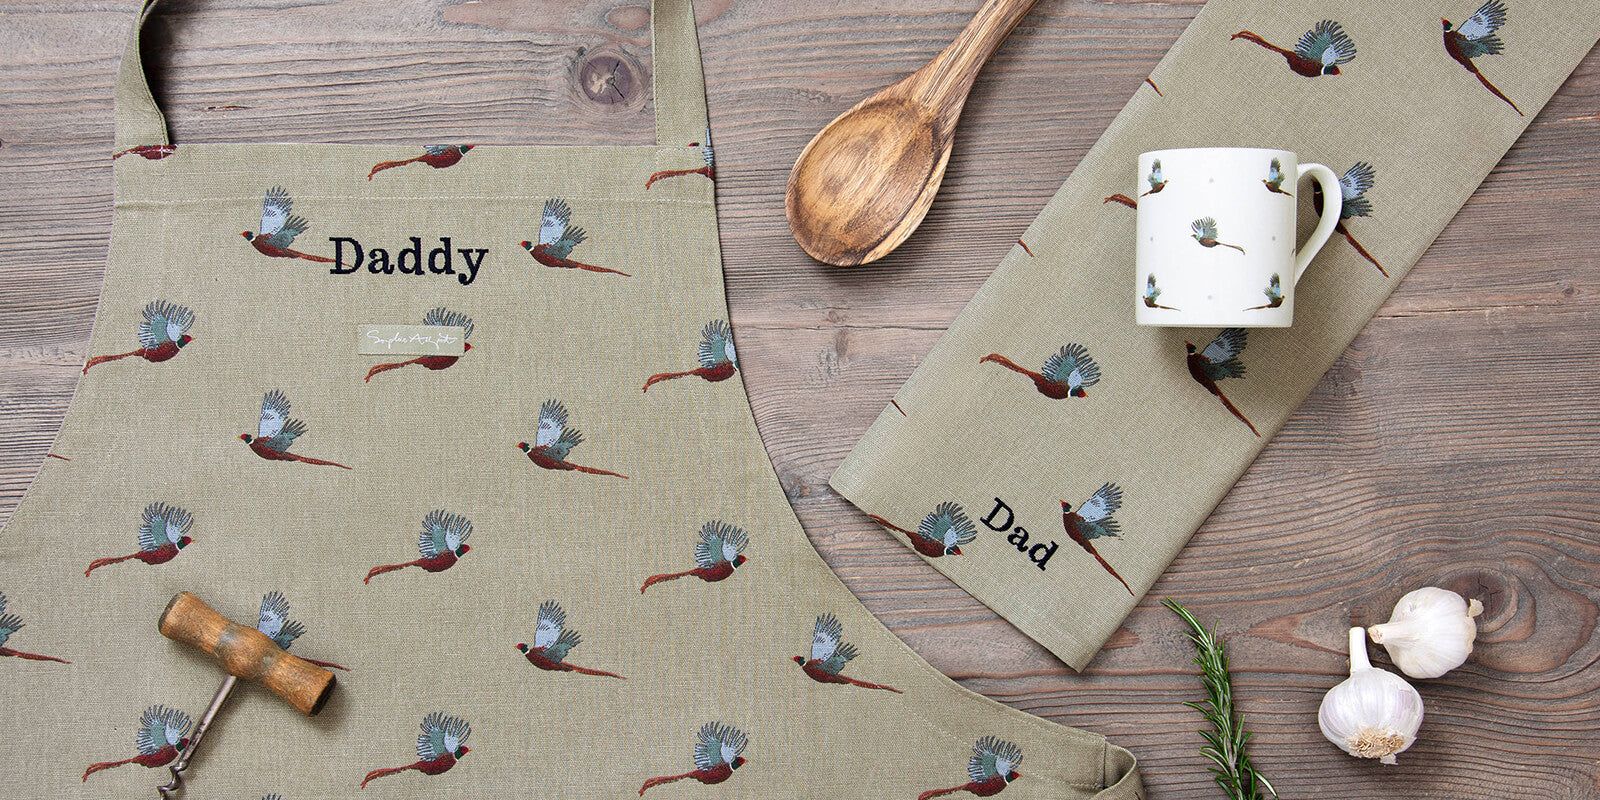 Father's Day gifts 2020 by Sophie Allport